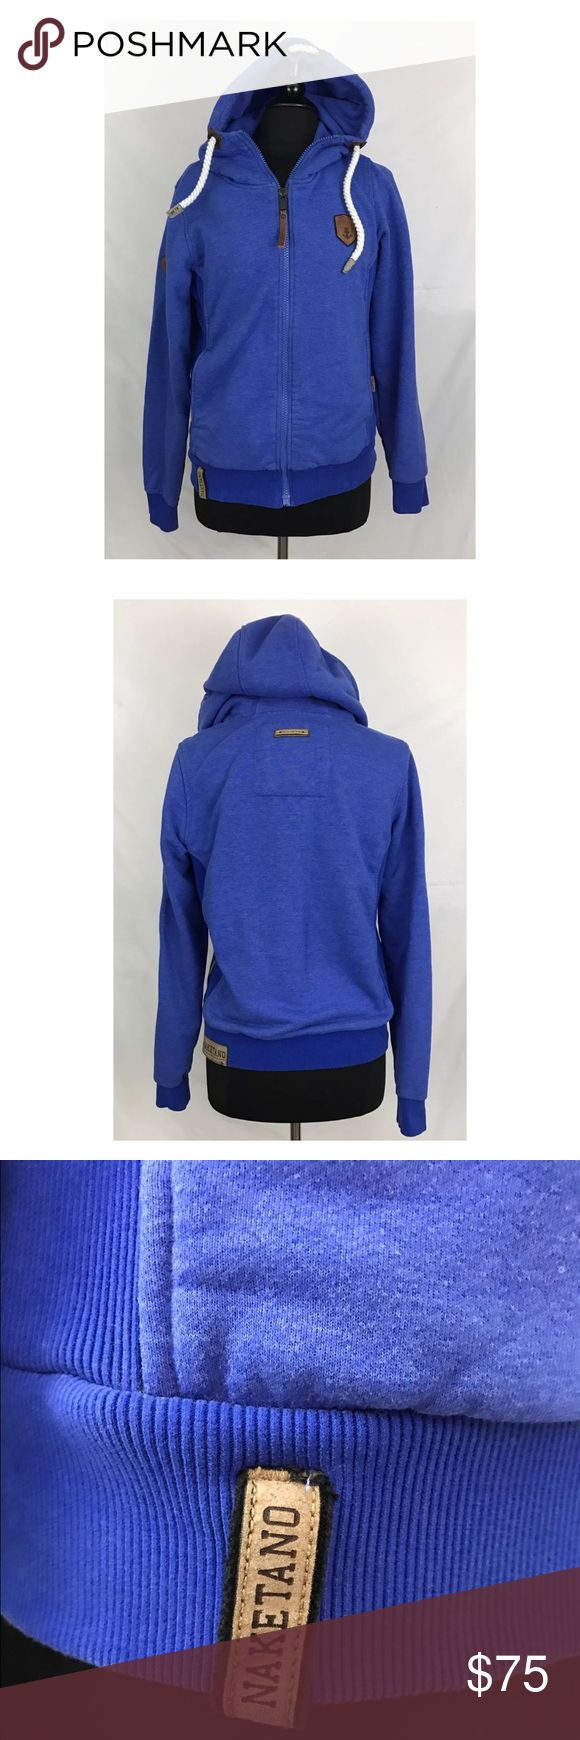 Naketano Blue Hoodie Zip Jacket Unisex S Fits M L Naketano Nautical Blue Hoodie/sweatshirt-beautiful gently used condition.  Unisex Size Small-fits women's medium or large.  Brave New Word/ The Poets Choice 25 inches length 20 inches armpit to armpit Naketano Tops Sweatshirts & Hoodies